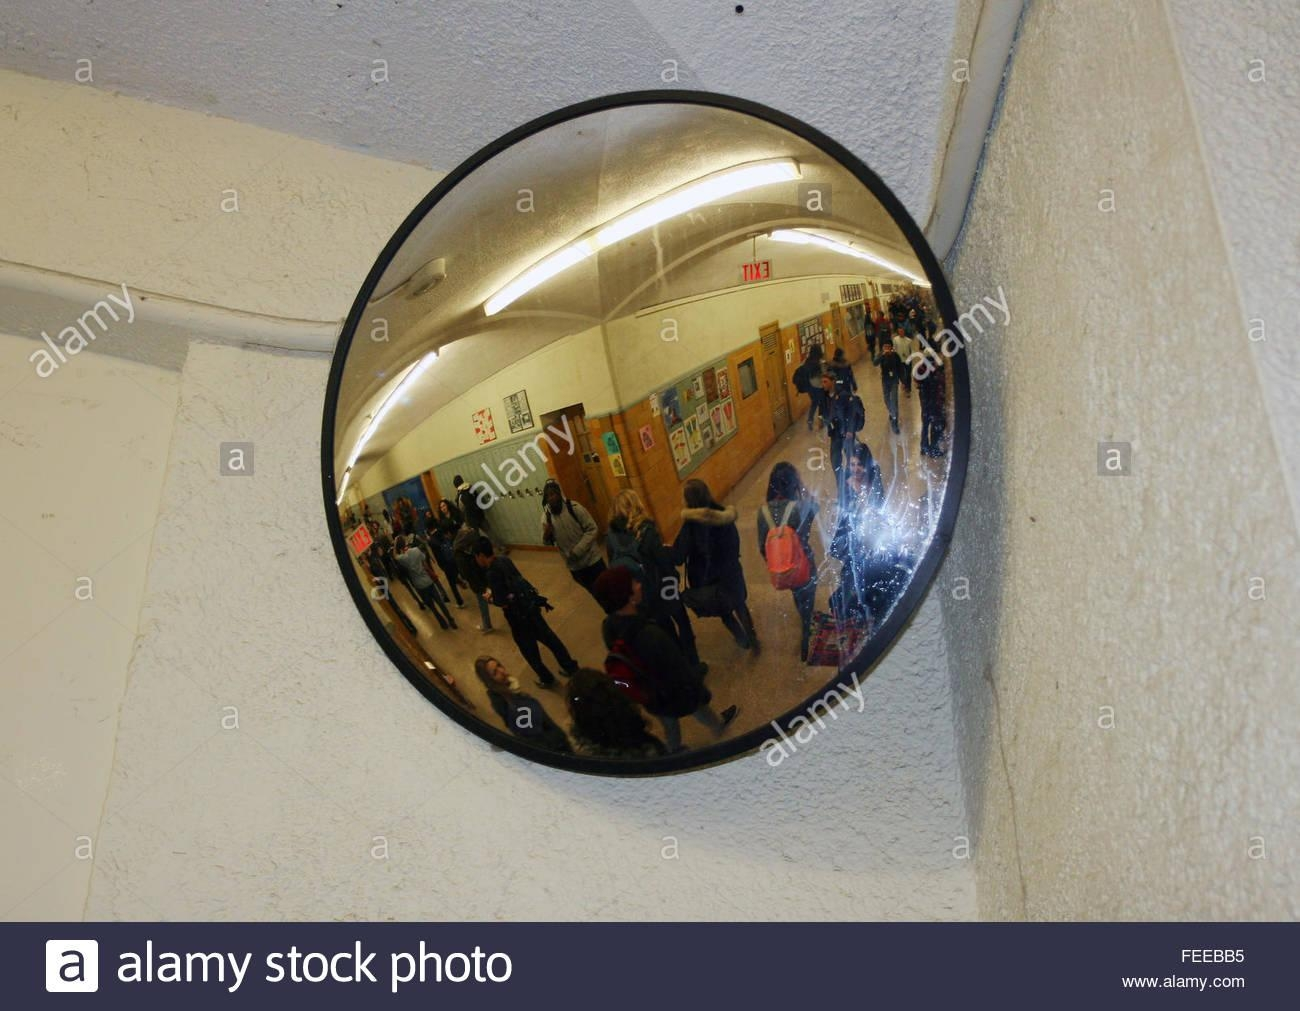 Convex Mirror Security Stock Photos & Convex Mirror Security Stock Inside Hallway Safety Mirrors (Image 4 of 20)